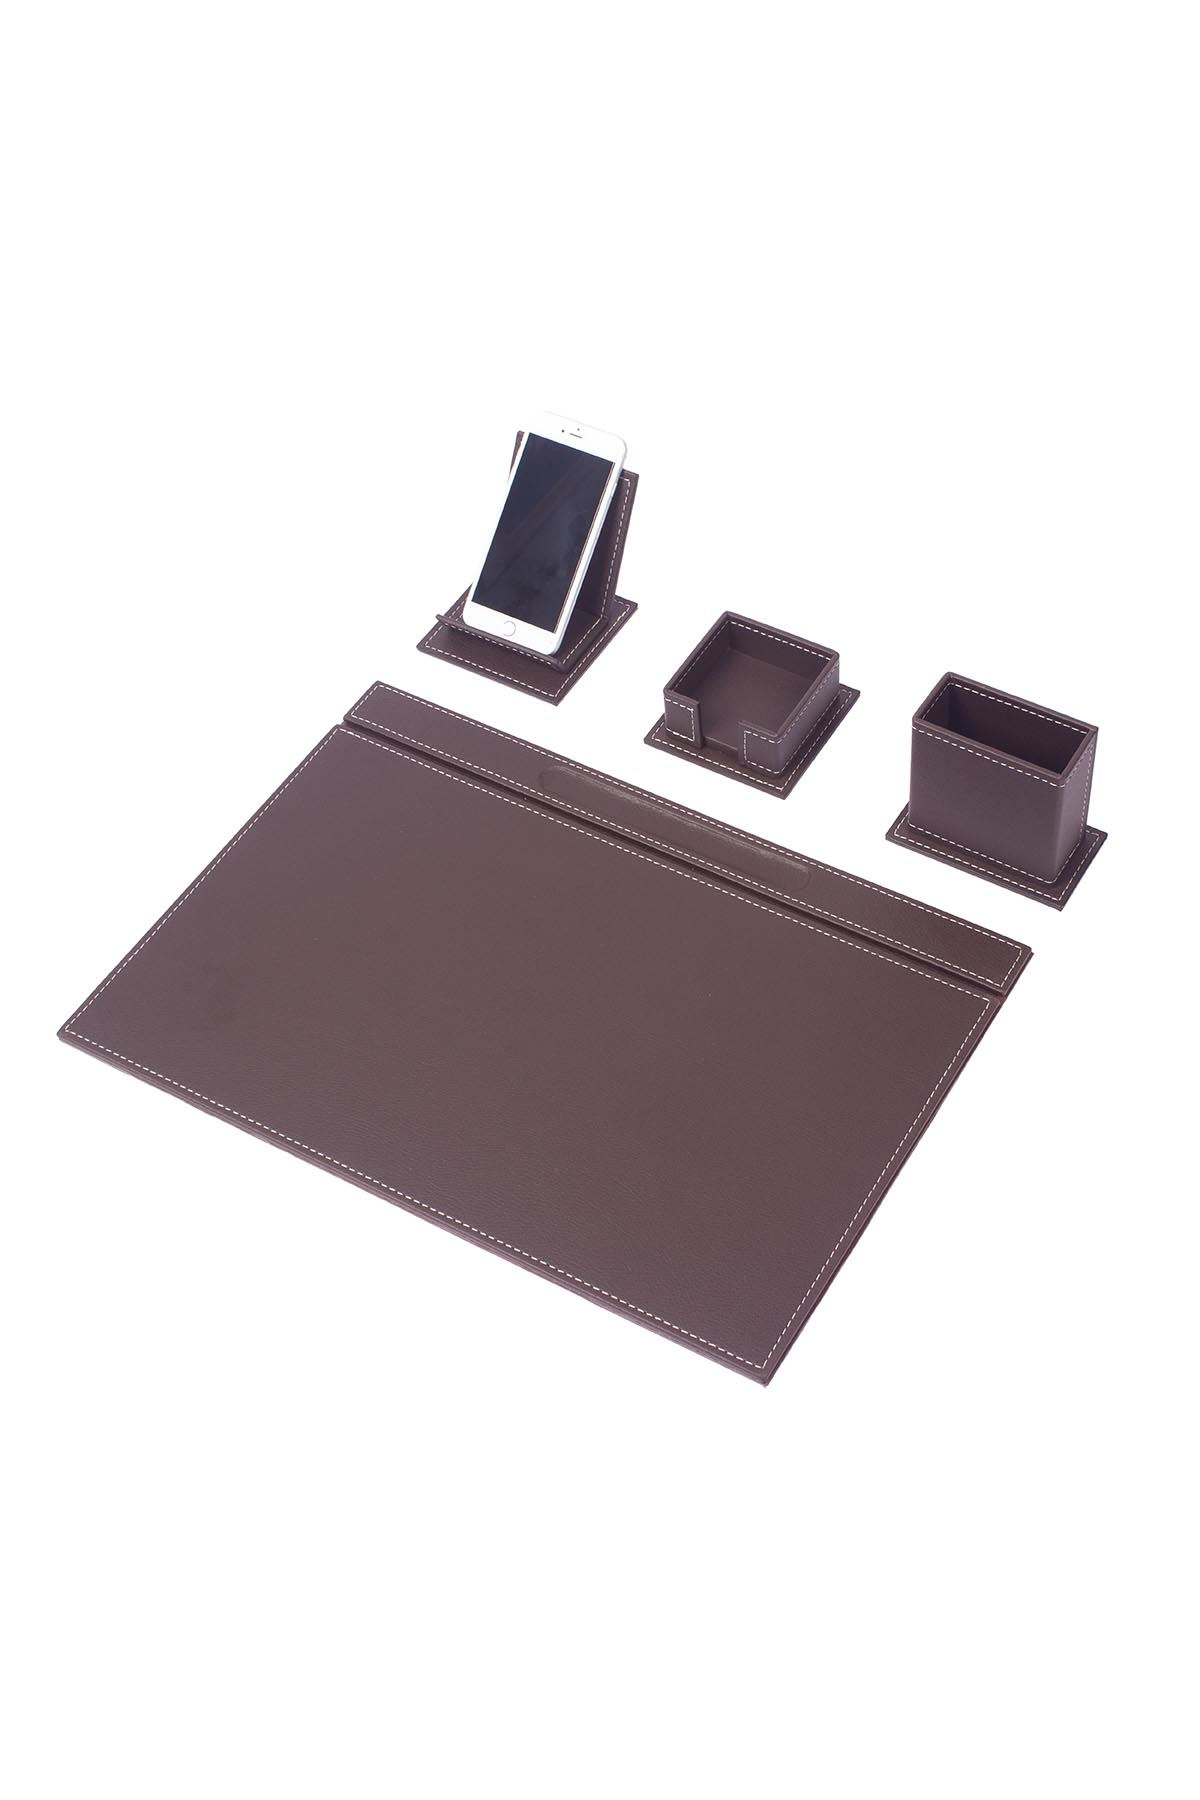 Vega Leather Desk Set Brown 4 Accessories